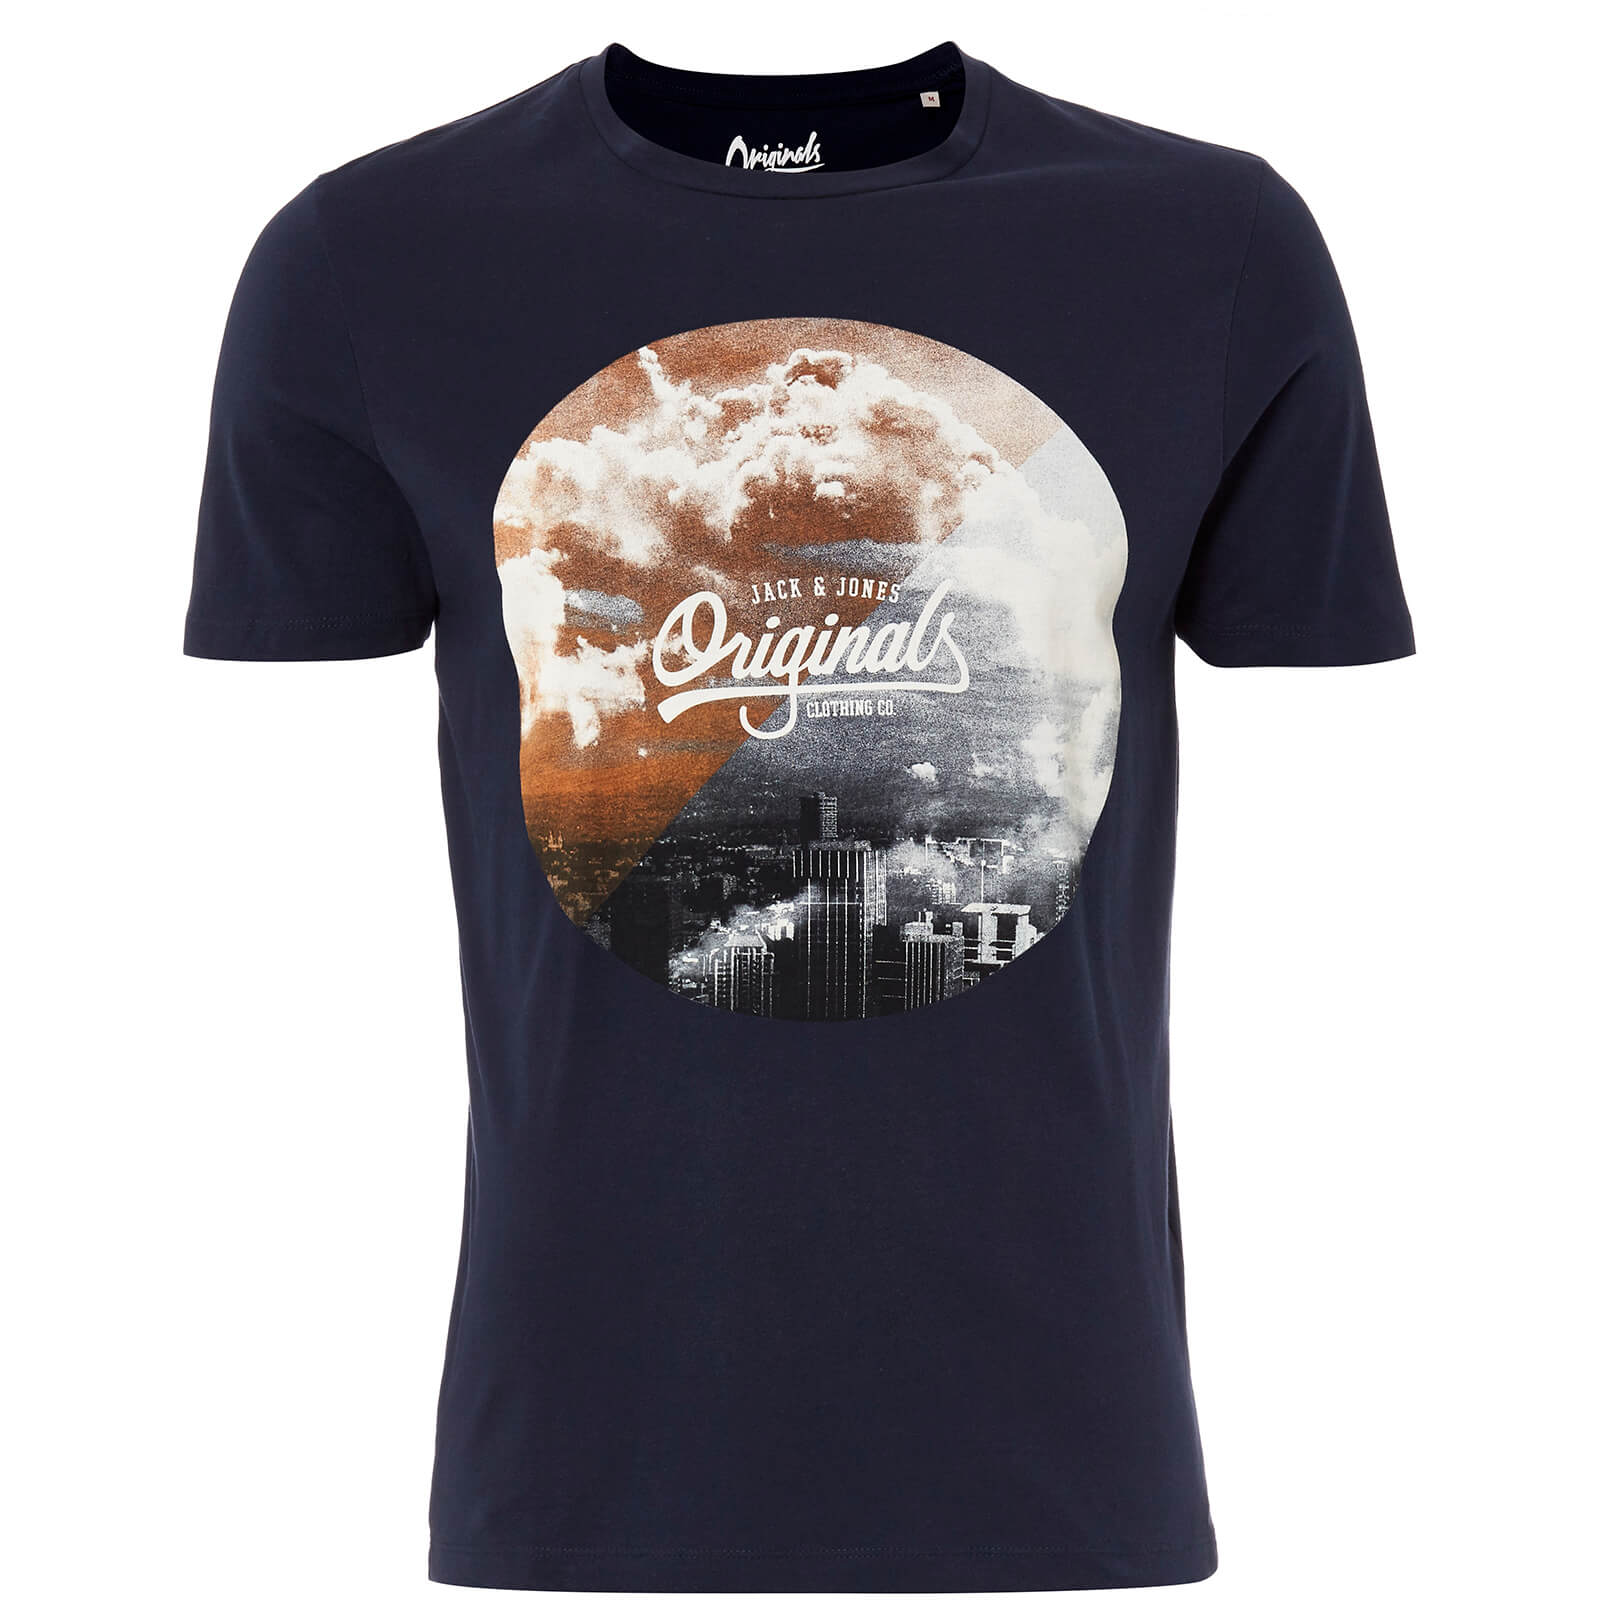 T-Shirt Homme Originals Arco Jack & Jones - Bleu Marine